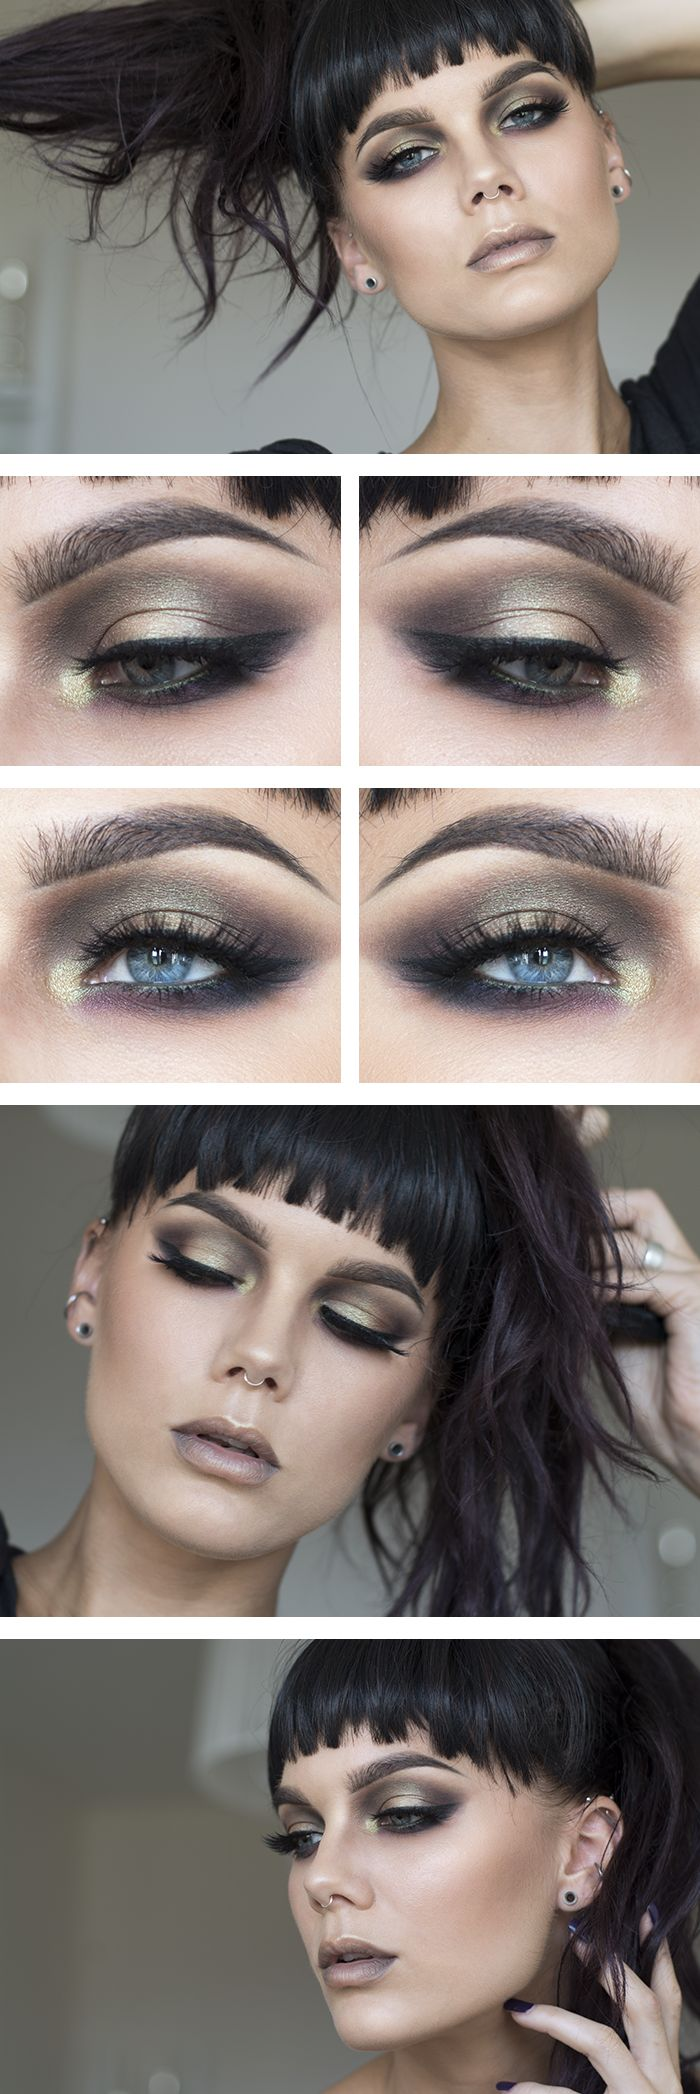 Perfect for clubwear or retro fun! great blog and love the makeup inspiration! Todays look – Saffron